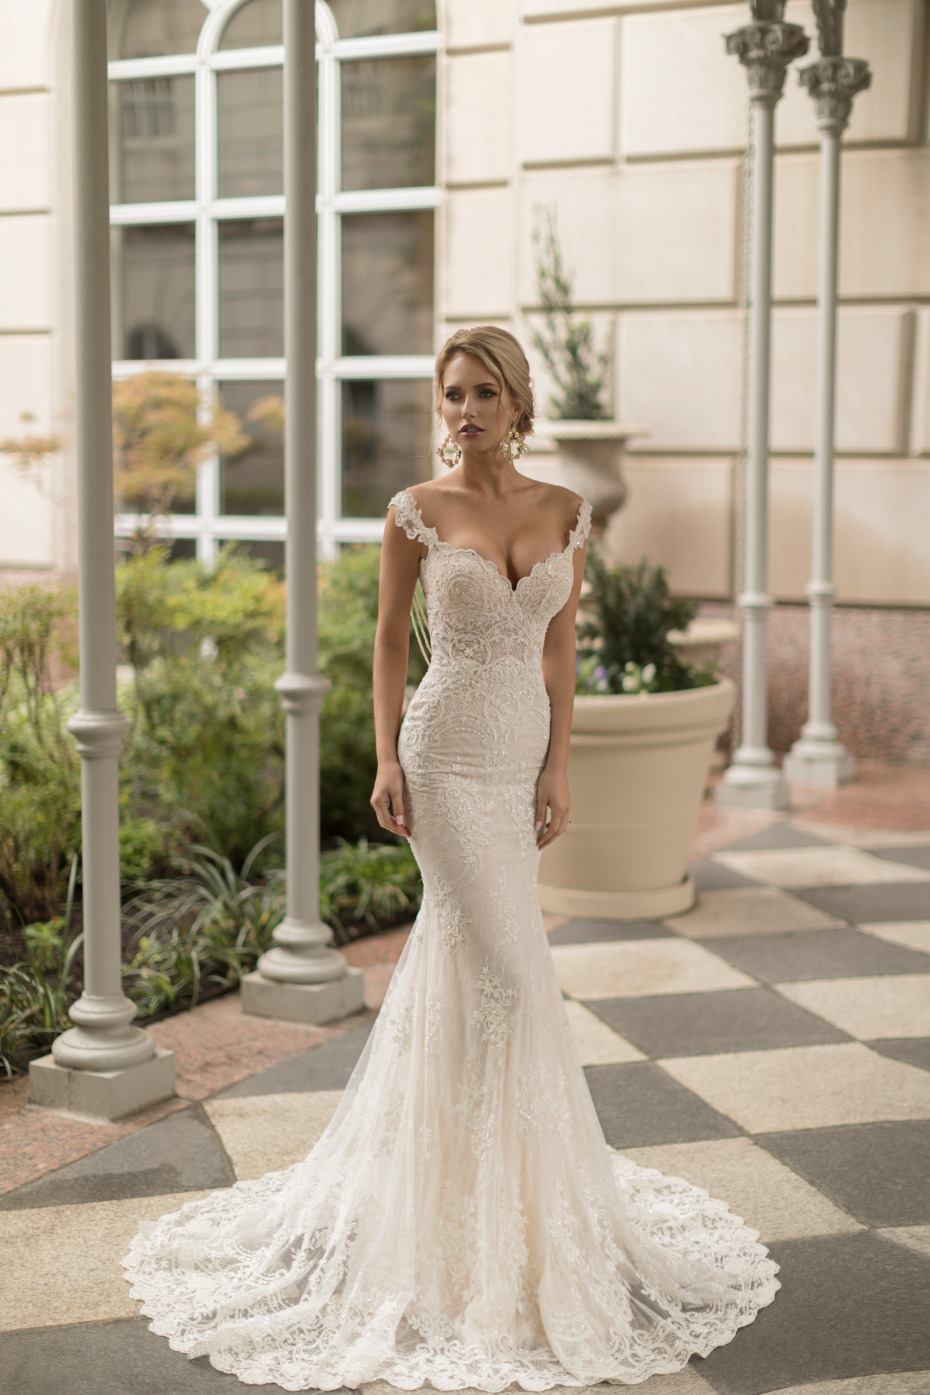 Naama & Anat Pasodoble Gown